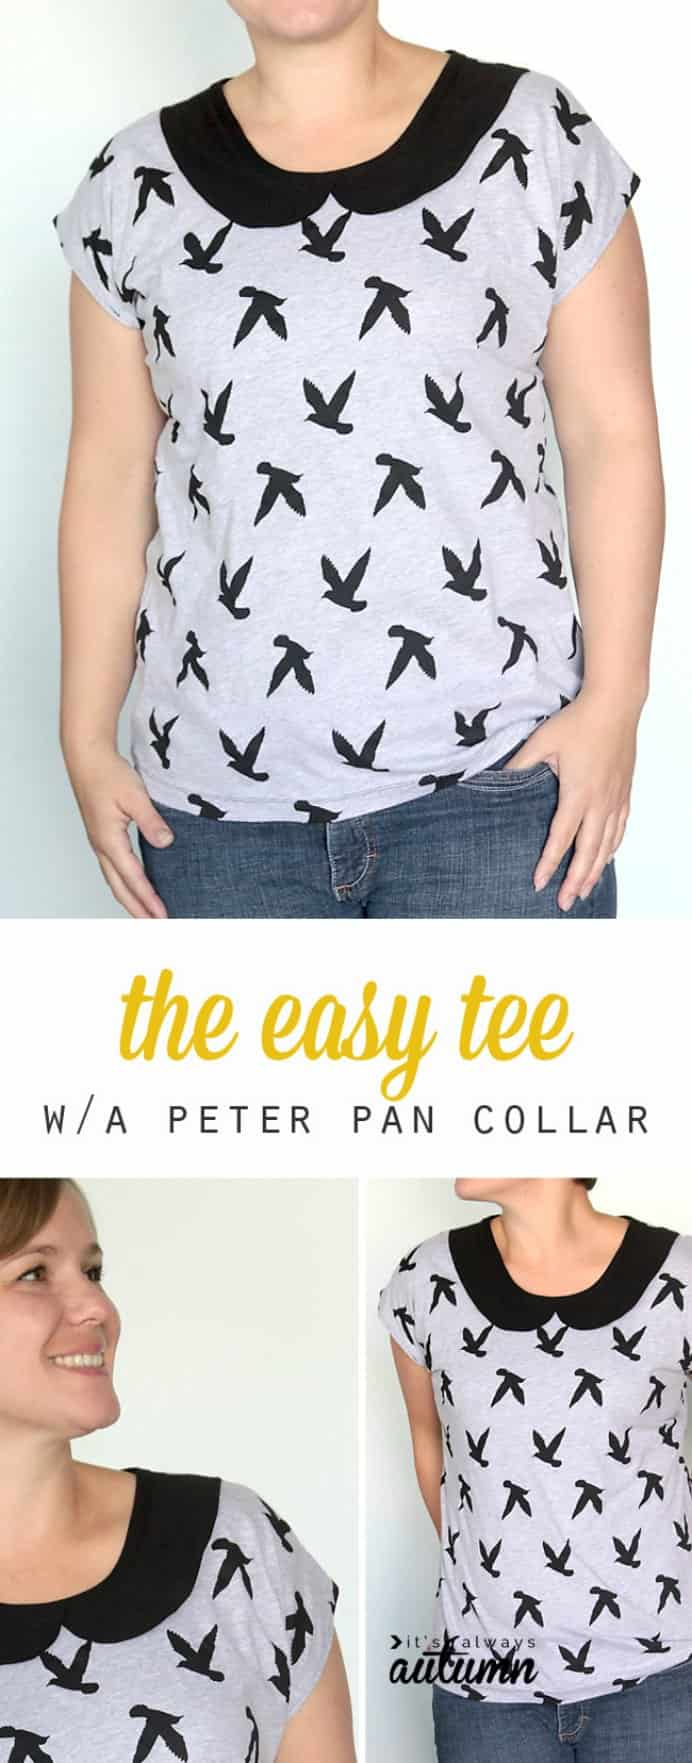 Autumn has a fantastic, easy to follow sewing tutorial for a gorgeous t-shirt with a Peter Pan collar. Perfect for the warmer months:) The step by step instructions with clear photos are so helpful. Please share. You will always look forward to Mondays, with our craft inspiration roundups -CraftyLikeGranny.com #sewing #sewingtips #sewingpattern